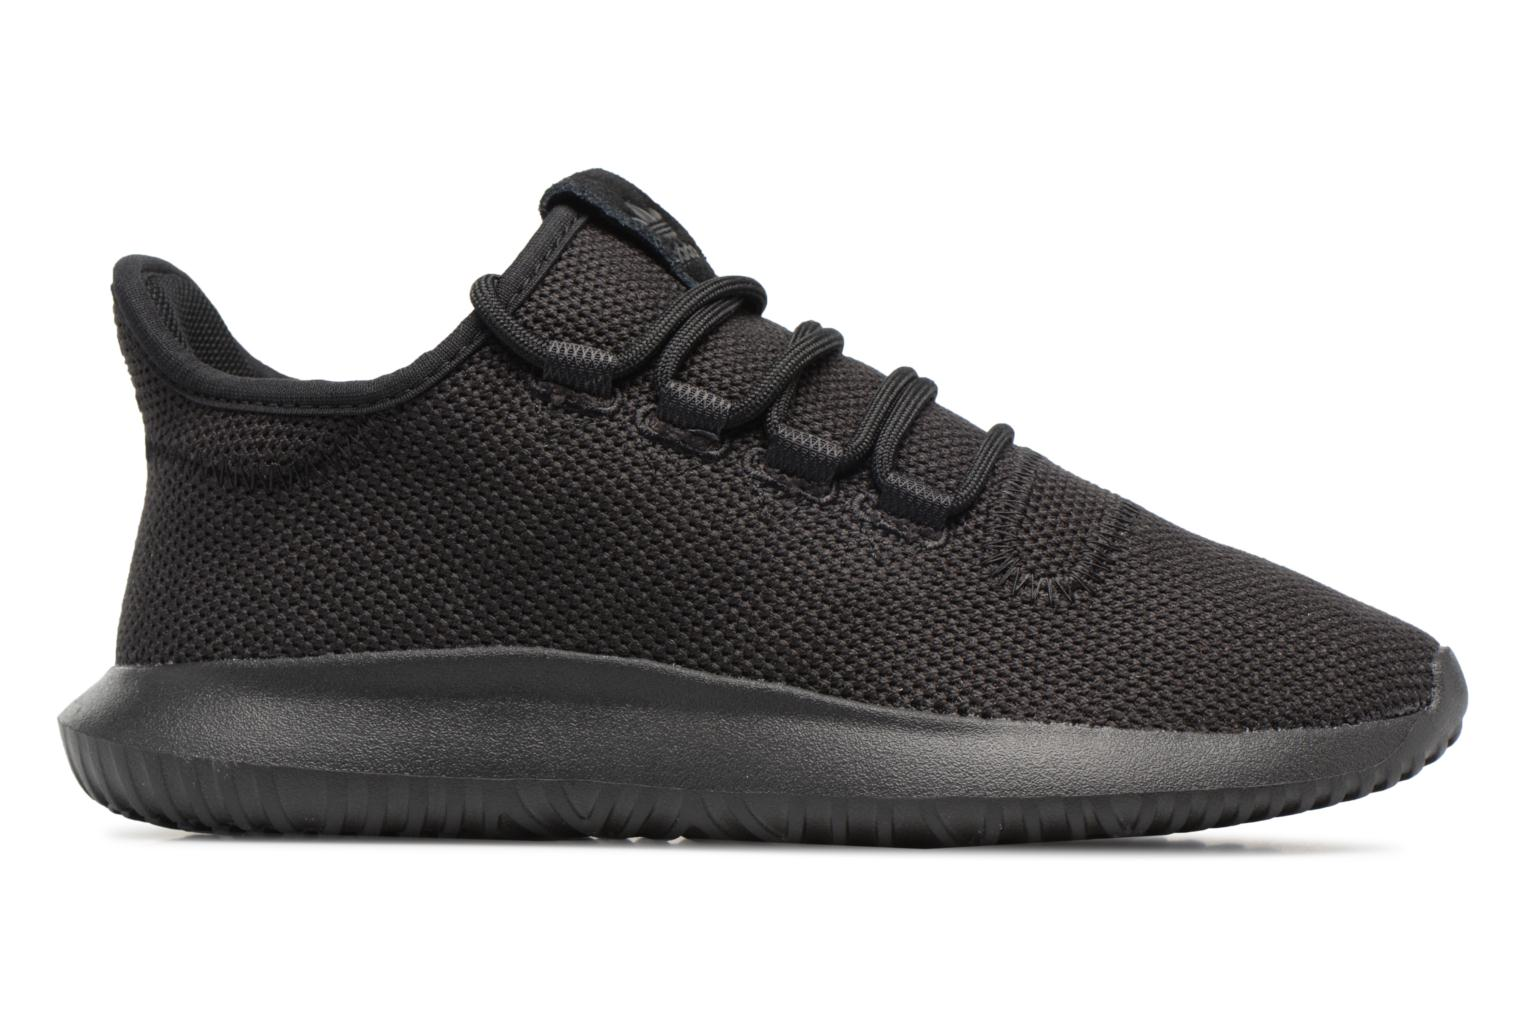 Baskets Adidas Originals Tubular Shadow J Noir vue derrière